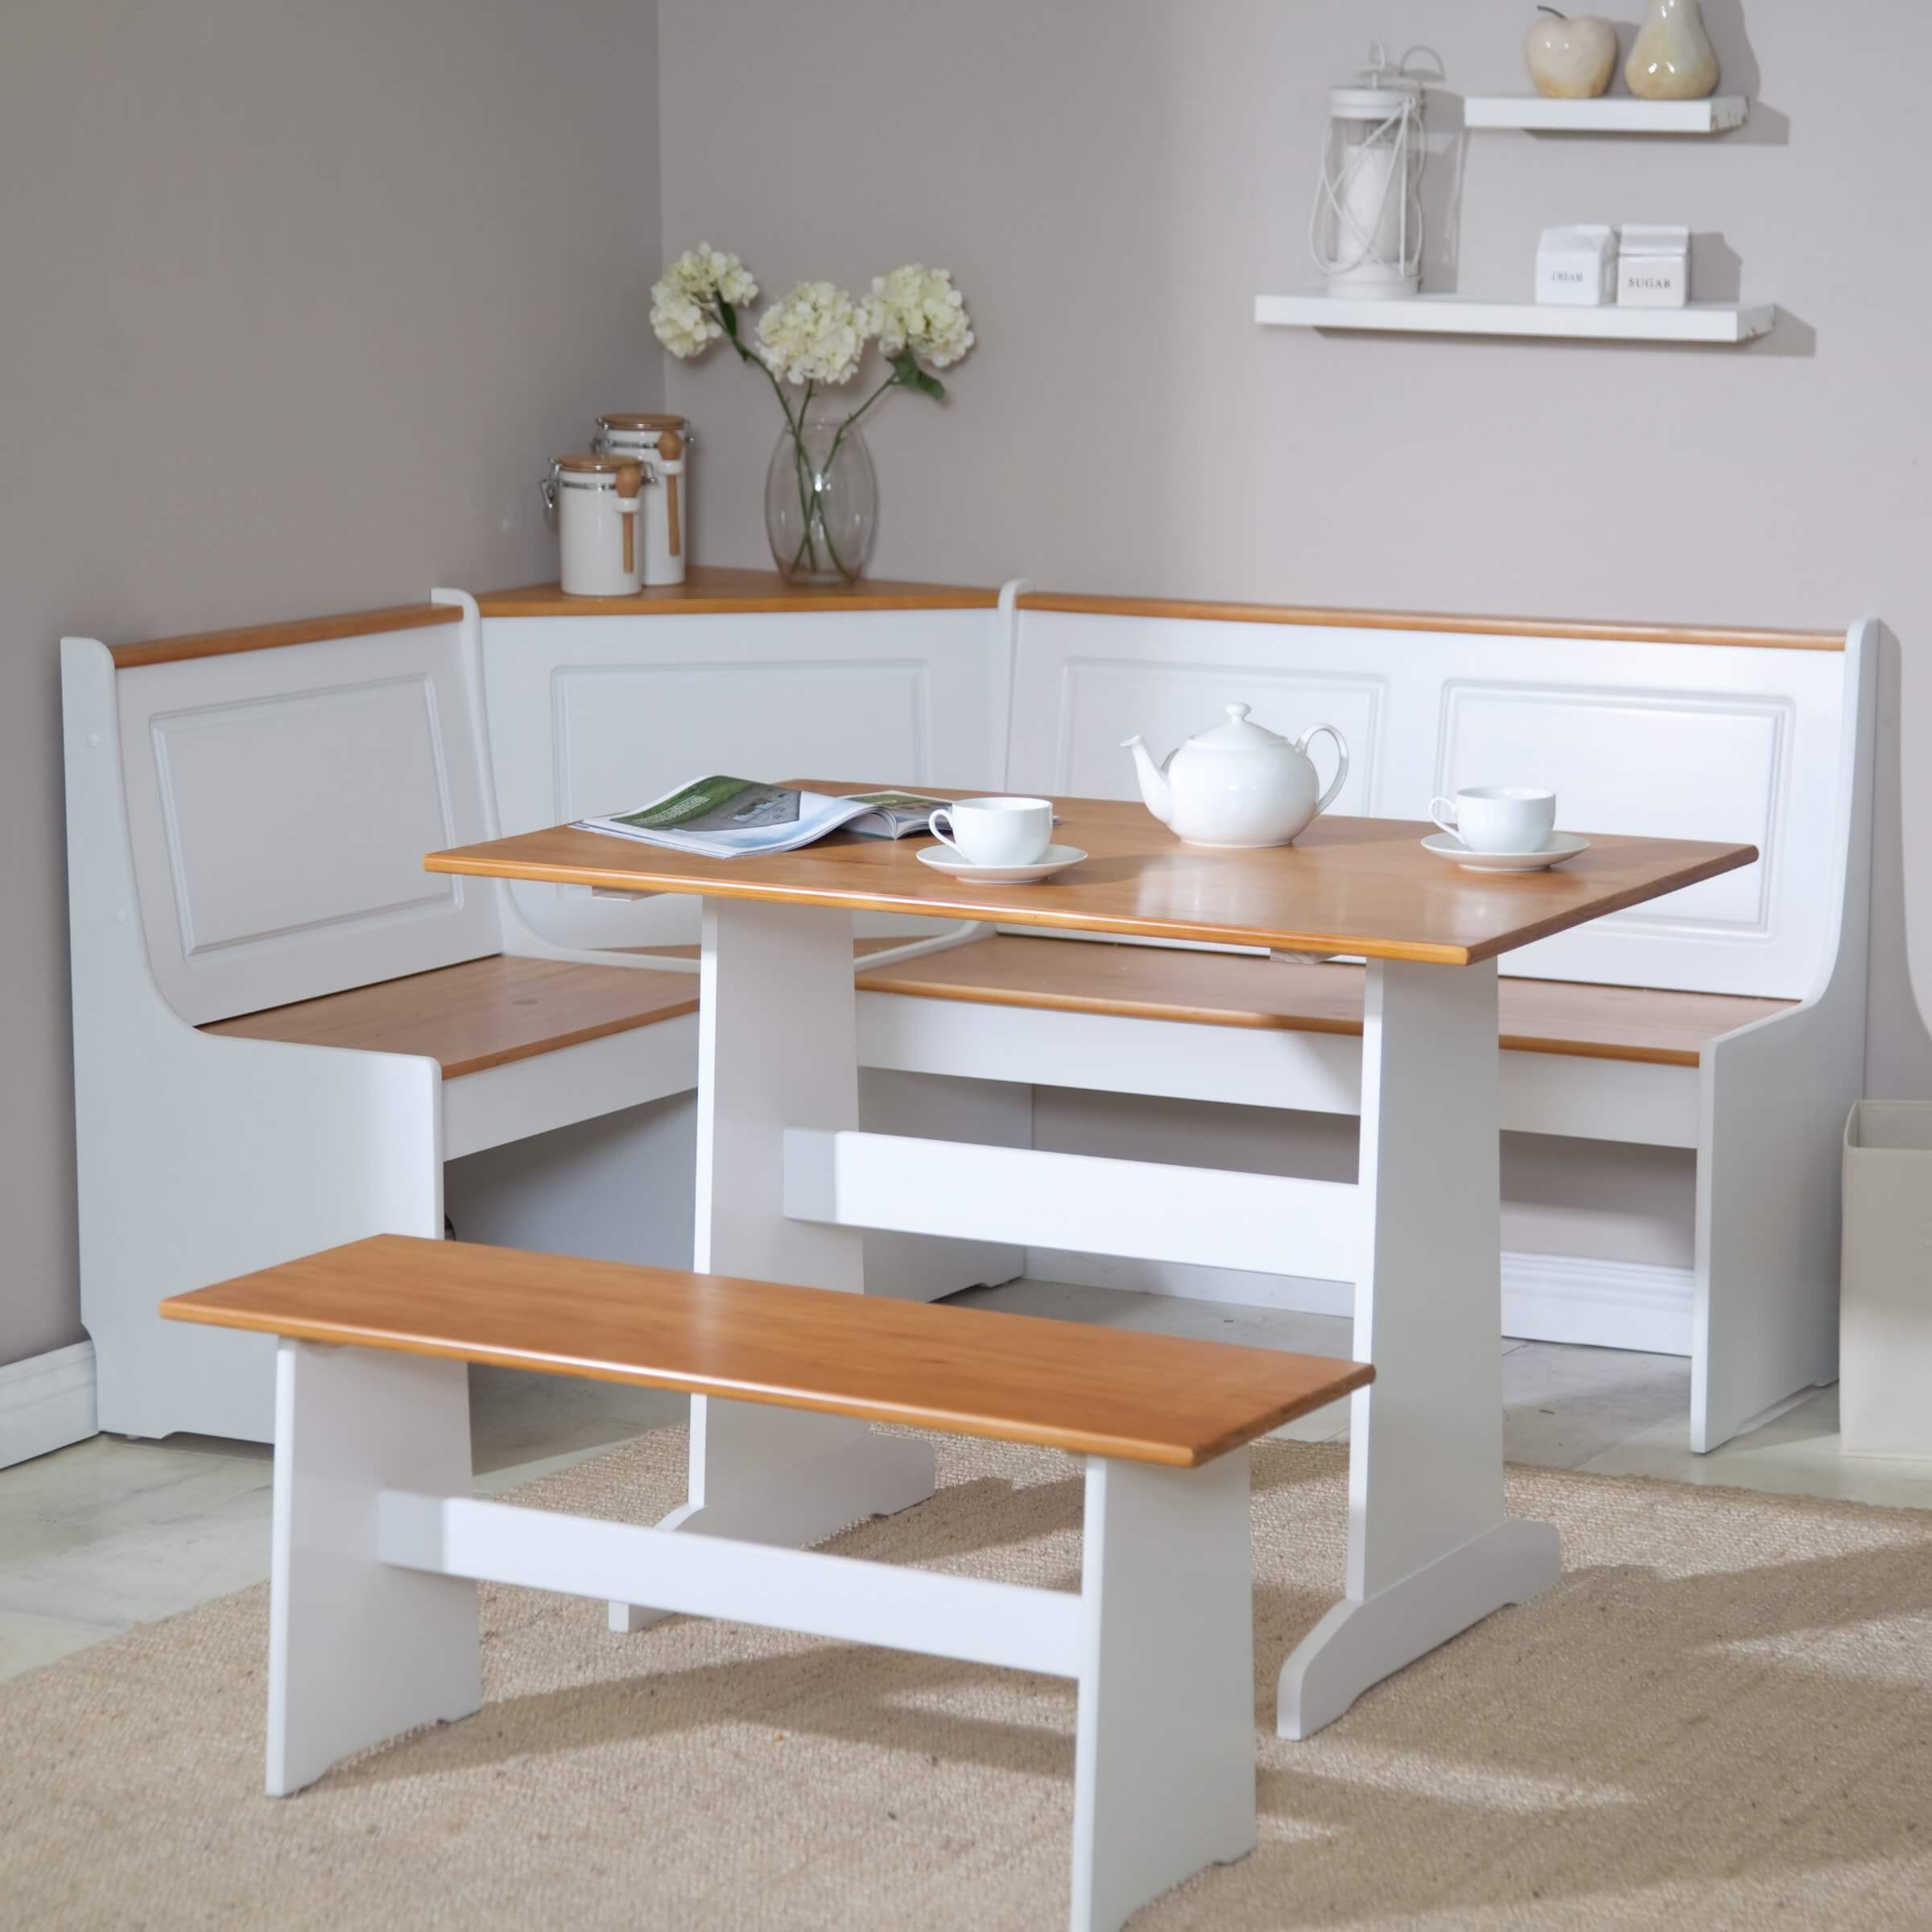 ^ 21 Space-Saving orner Breakfast Nook Furniture Sets (BOOHS)